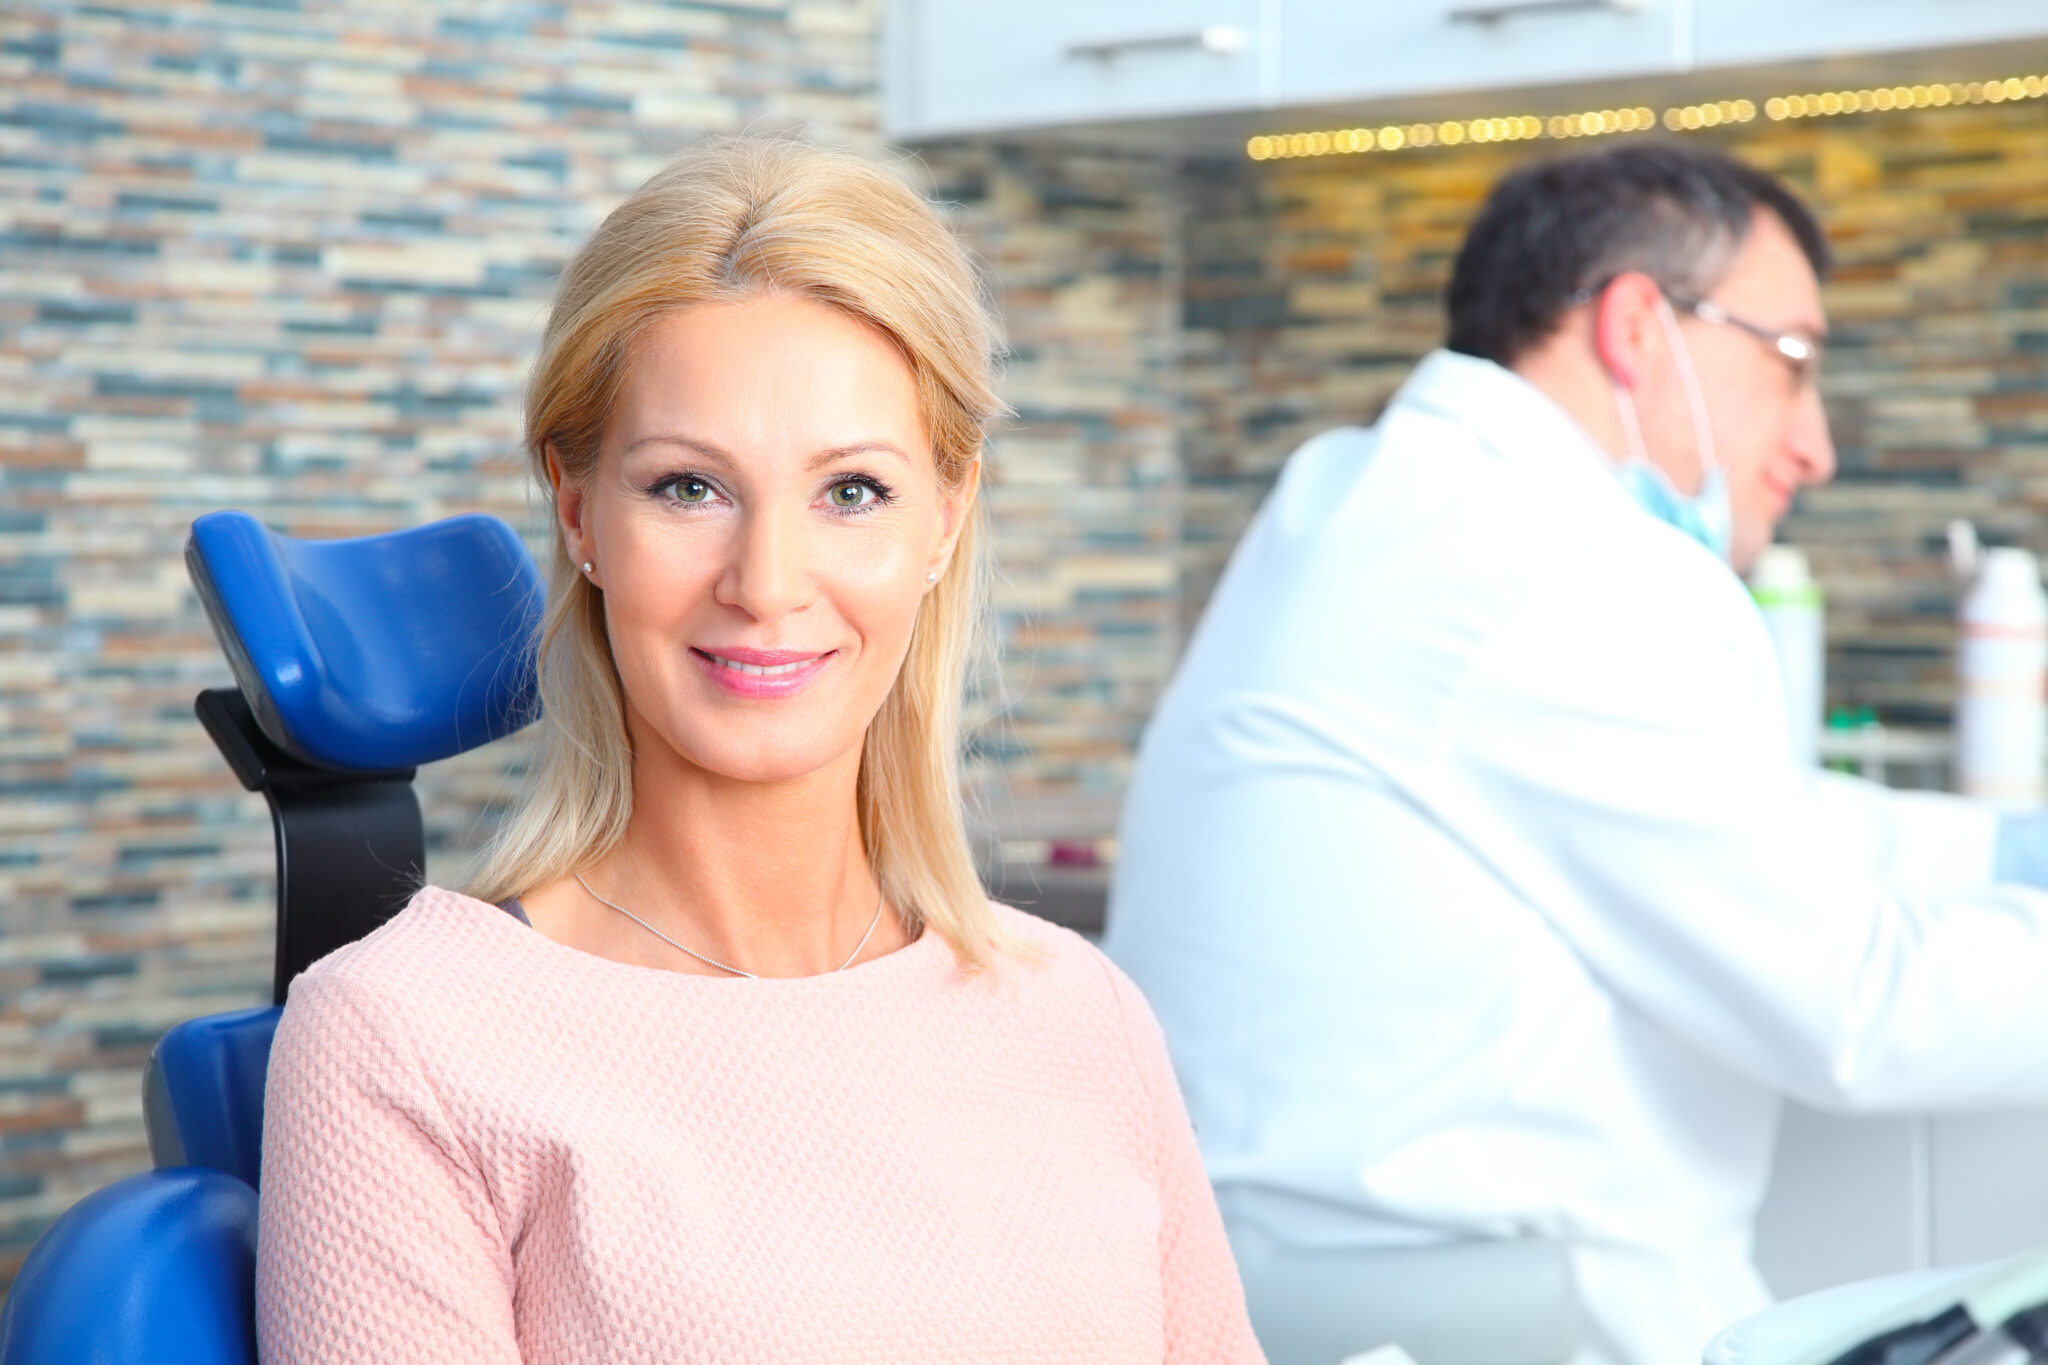 who offers dental implants boynton beach?